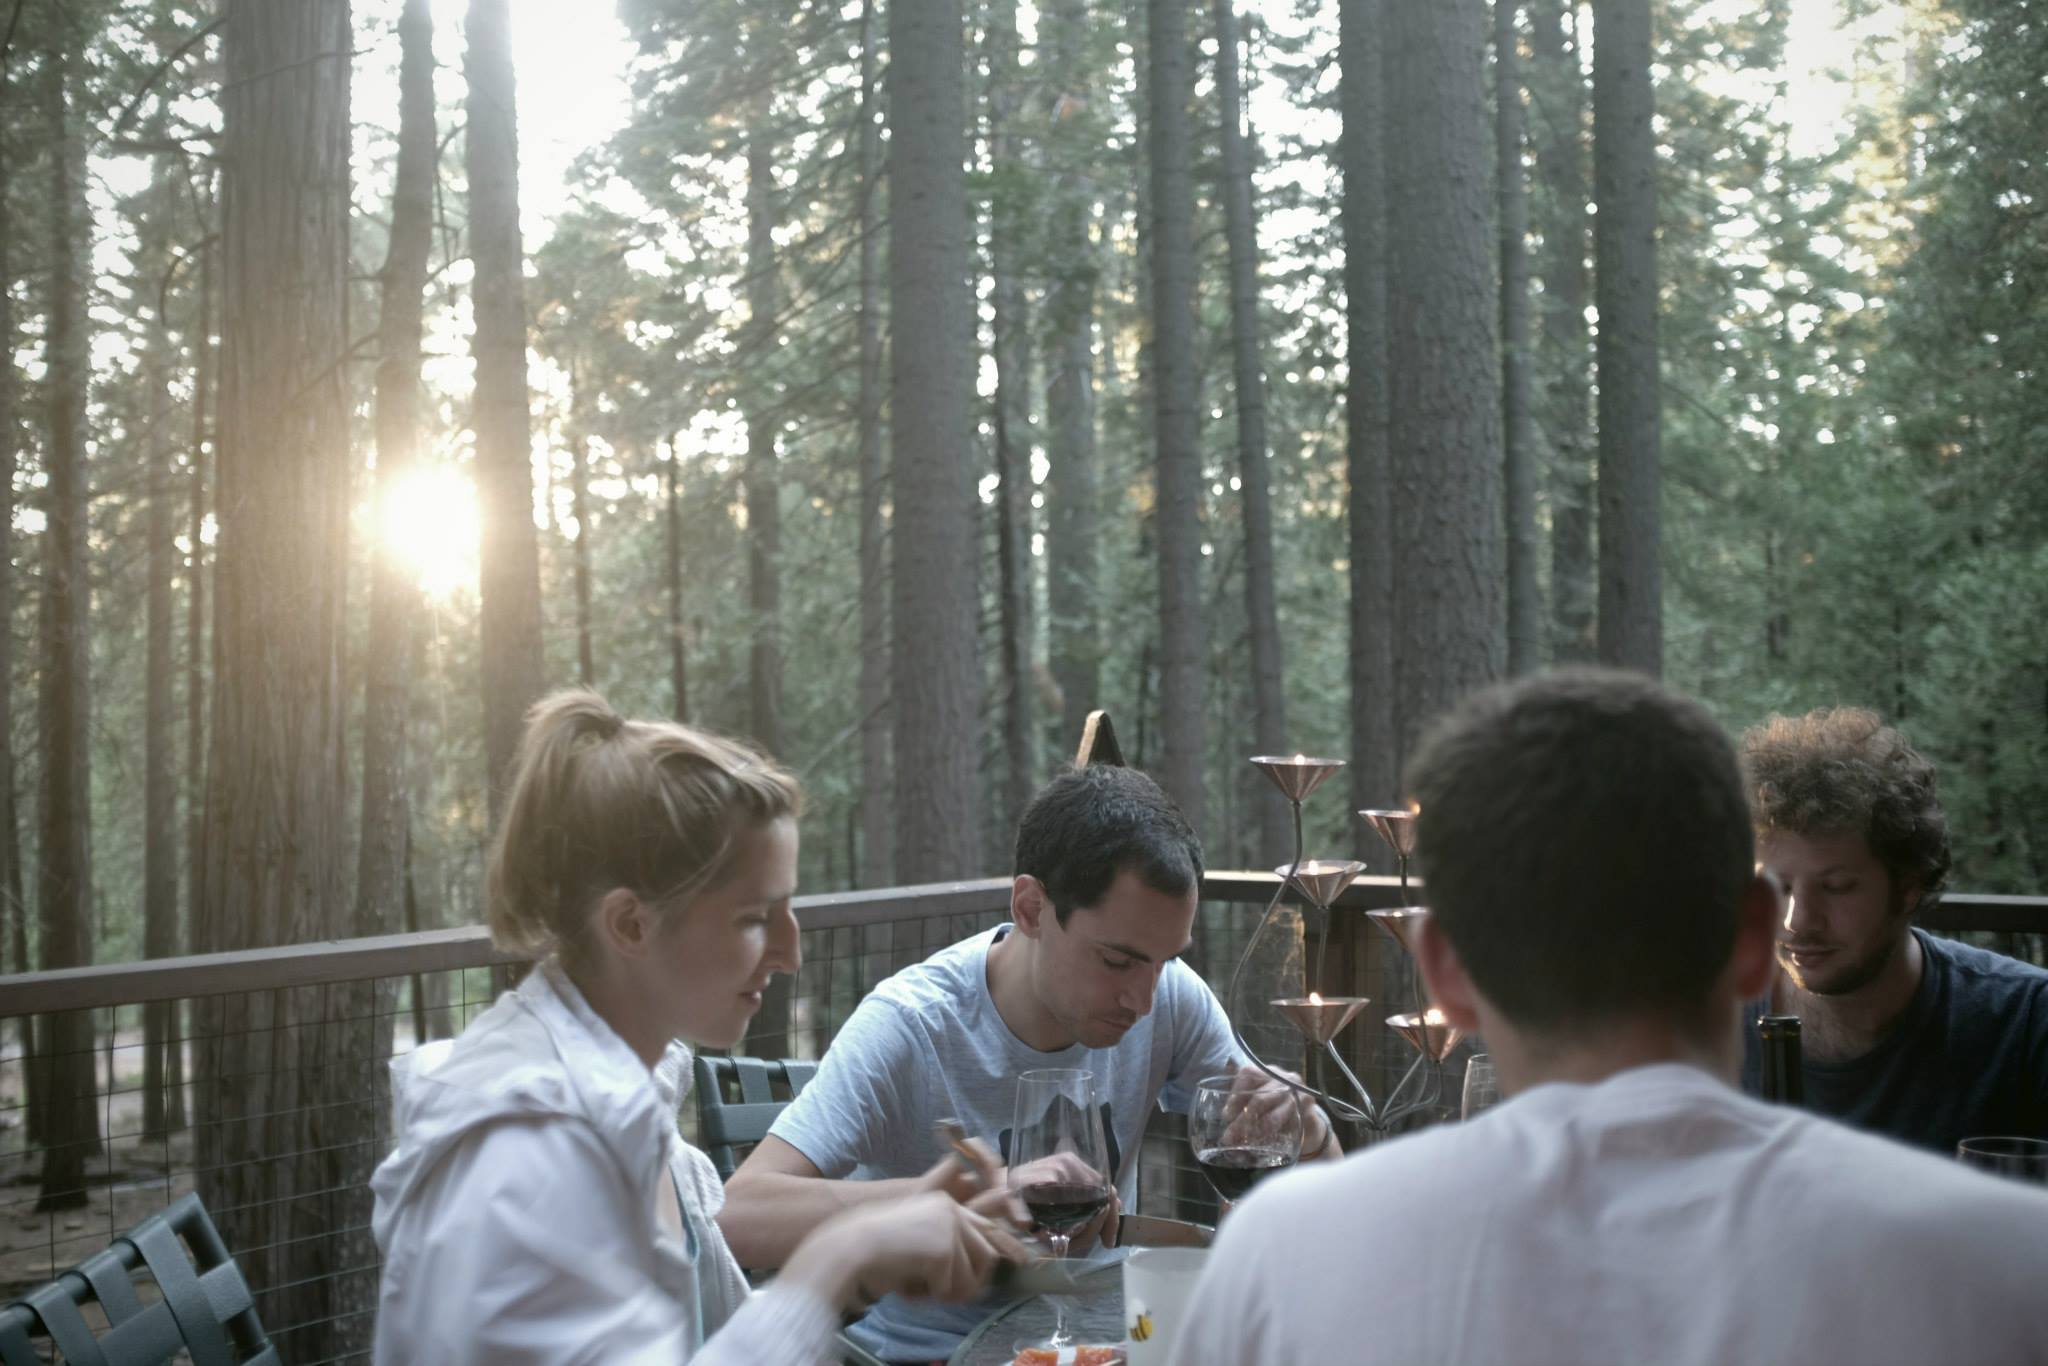 We made dinner in the woods